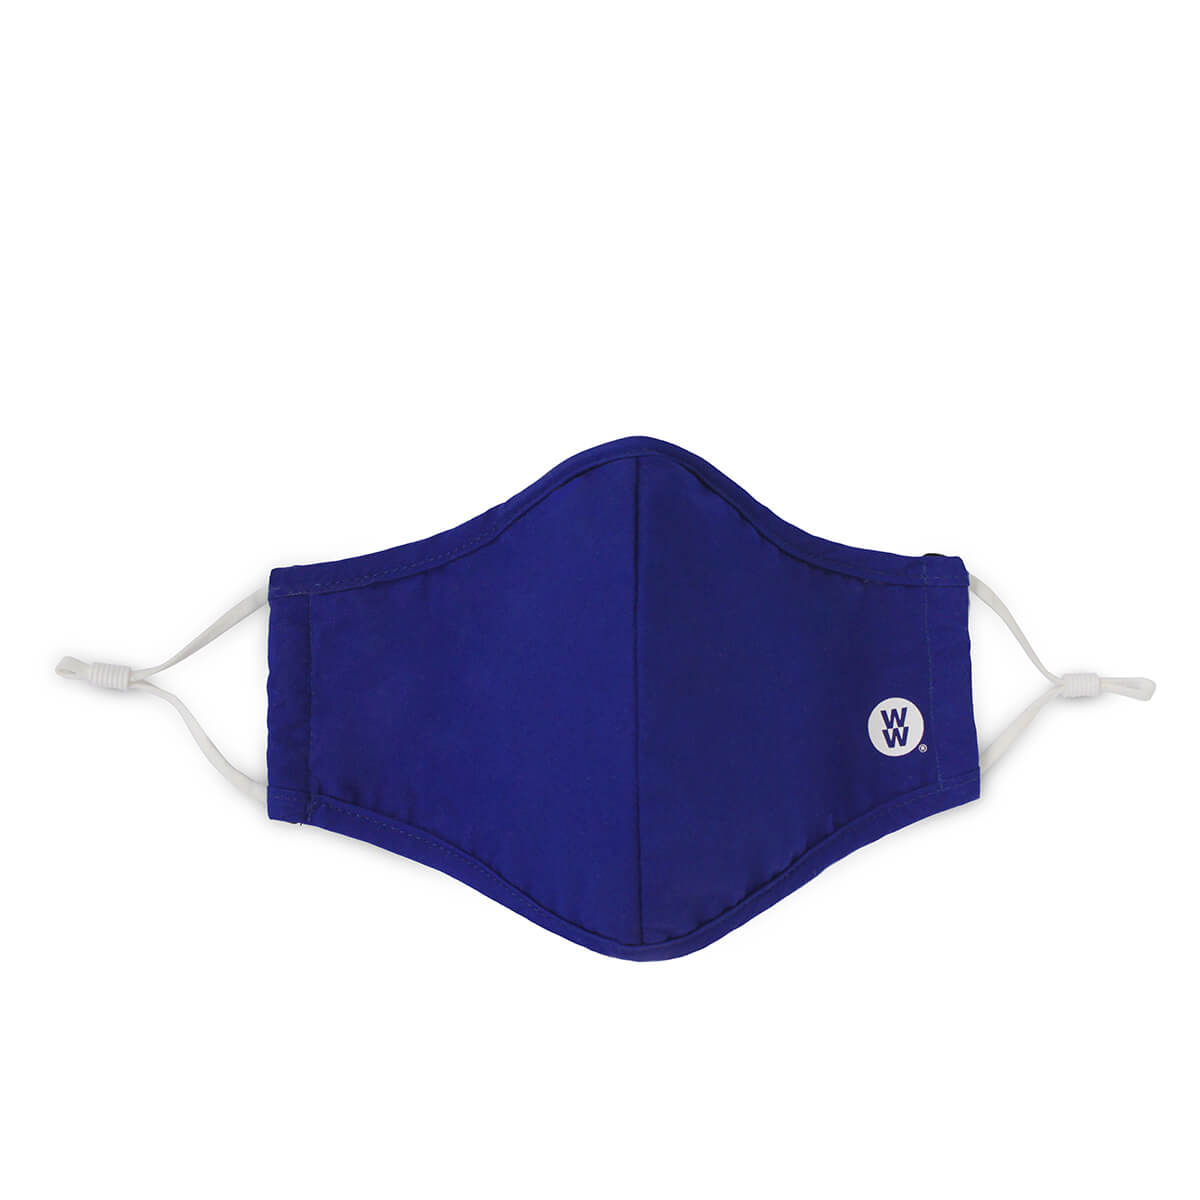 WW Reusable Cloth Mask - front